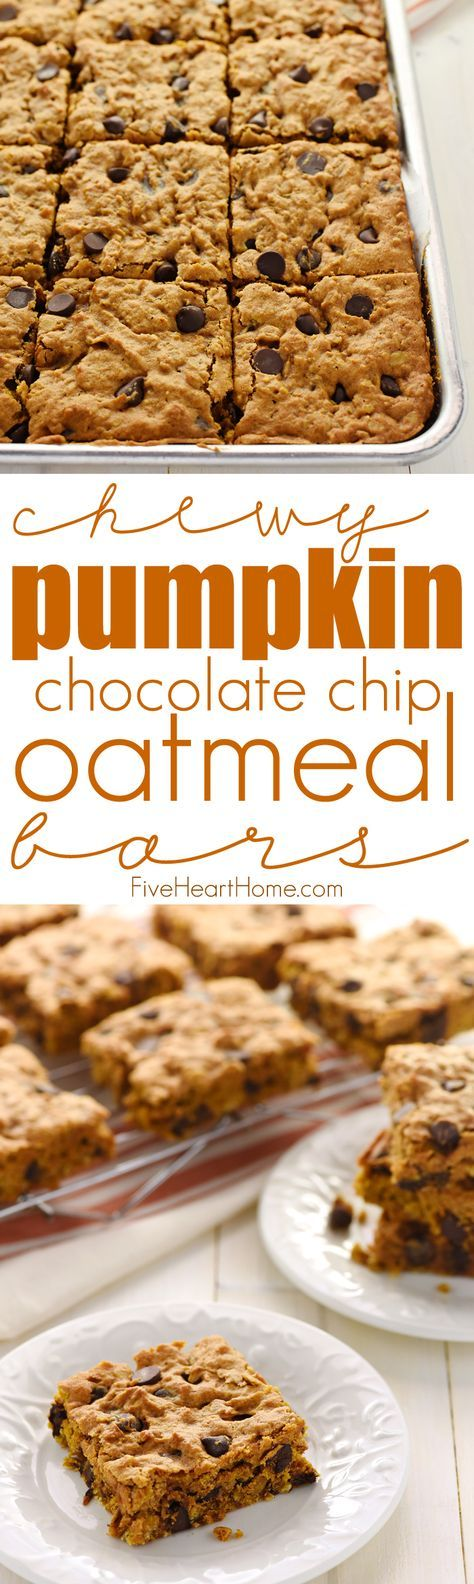 Chewy Pumpkin Chocolate Chip Oatmeal Bars Recipe